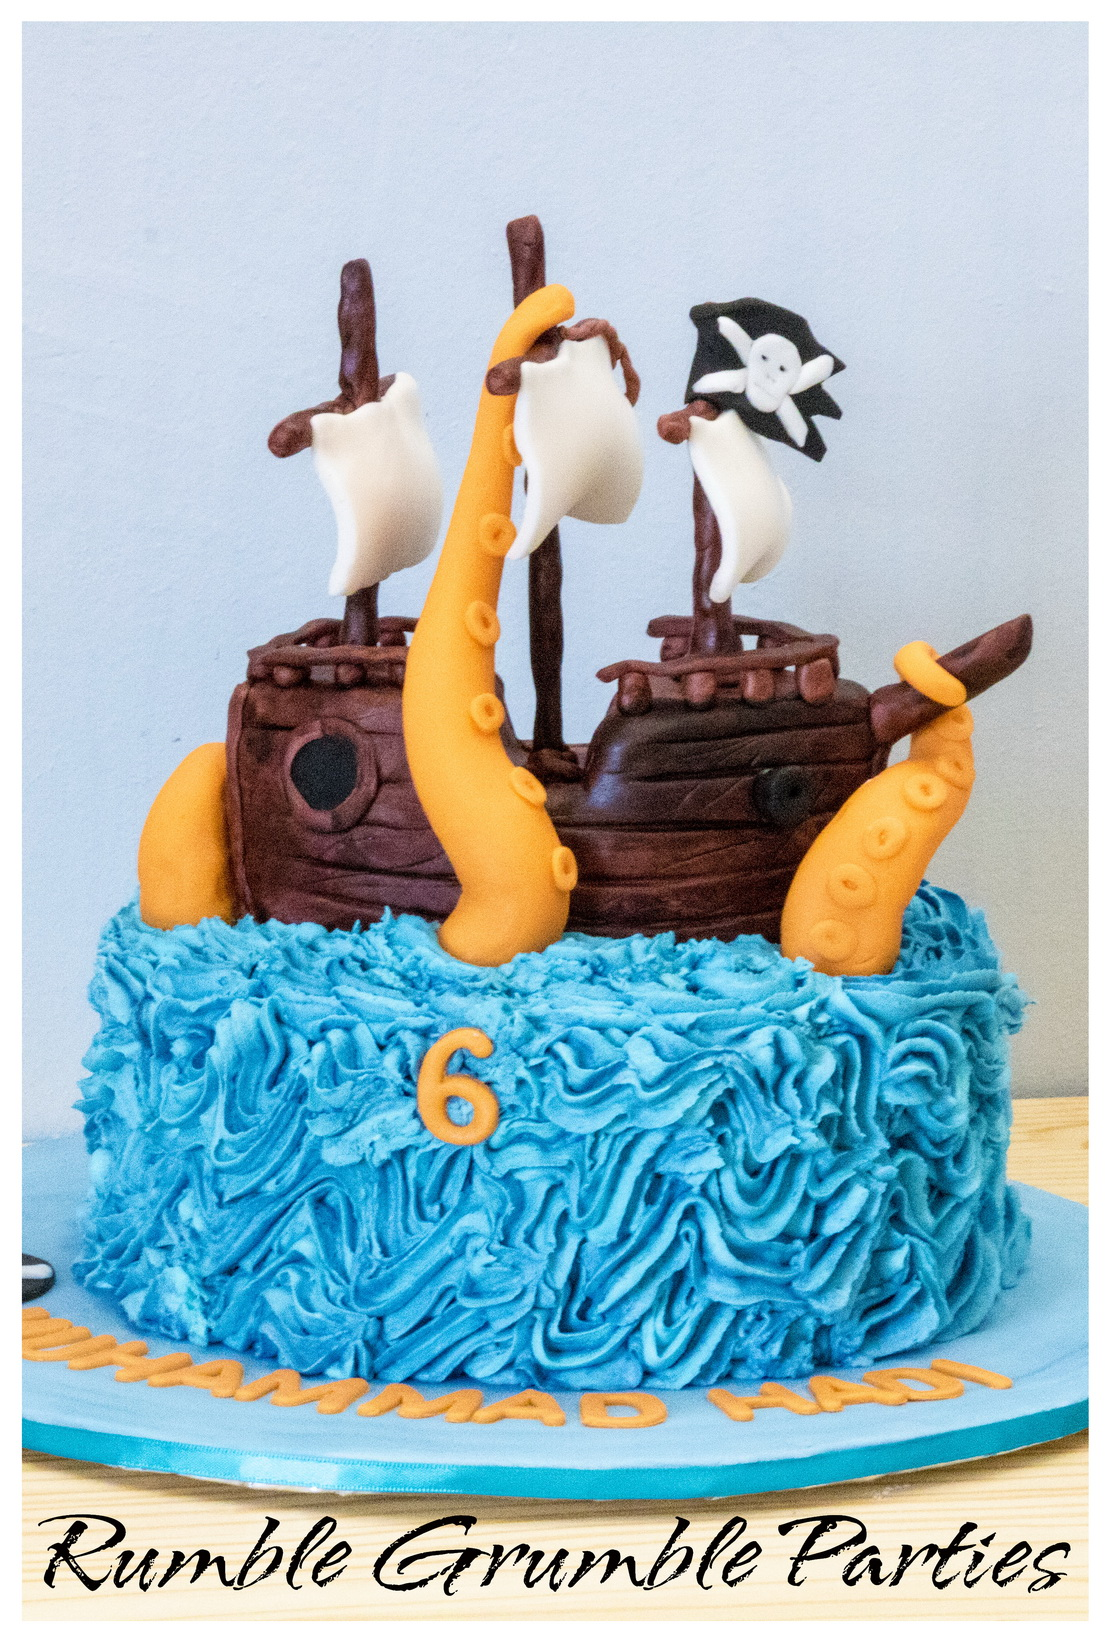 Pirate Cake With Pirate Ship Amp Octopus Tentacles Rumble